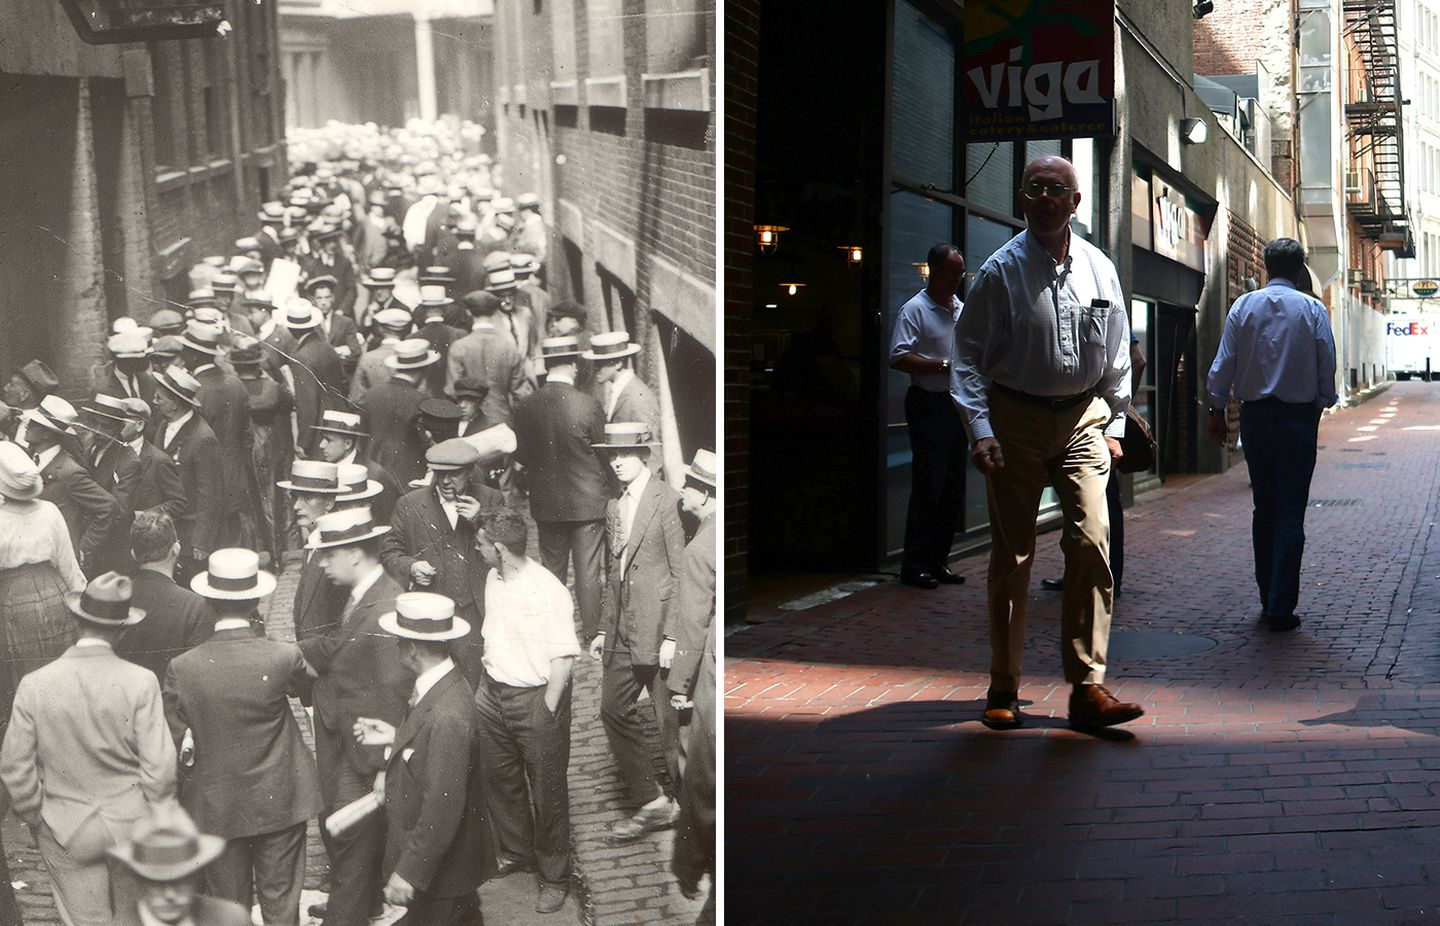 As one of the oldest streets in Boston, the alley has witnesssed centuries of history, including in August 1920 (left) when crowds linded the street hoping to collect on their 90-day notes at the nearby office of one Charles Ponzi. People made their way through Pi Alley (right).